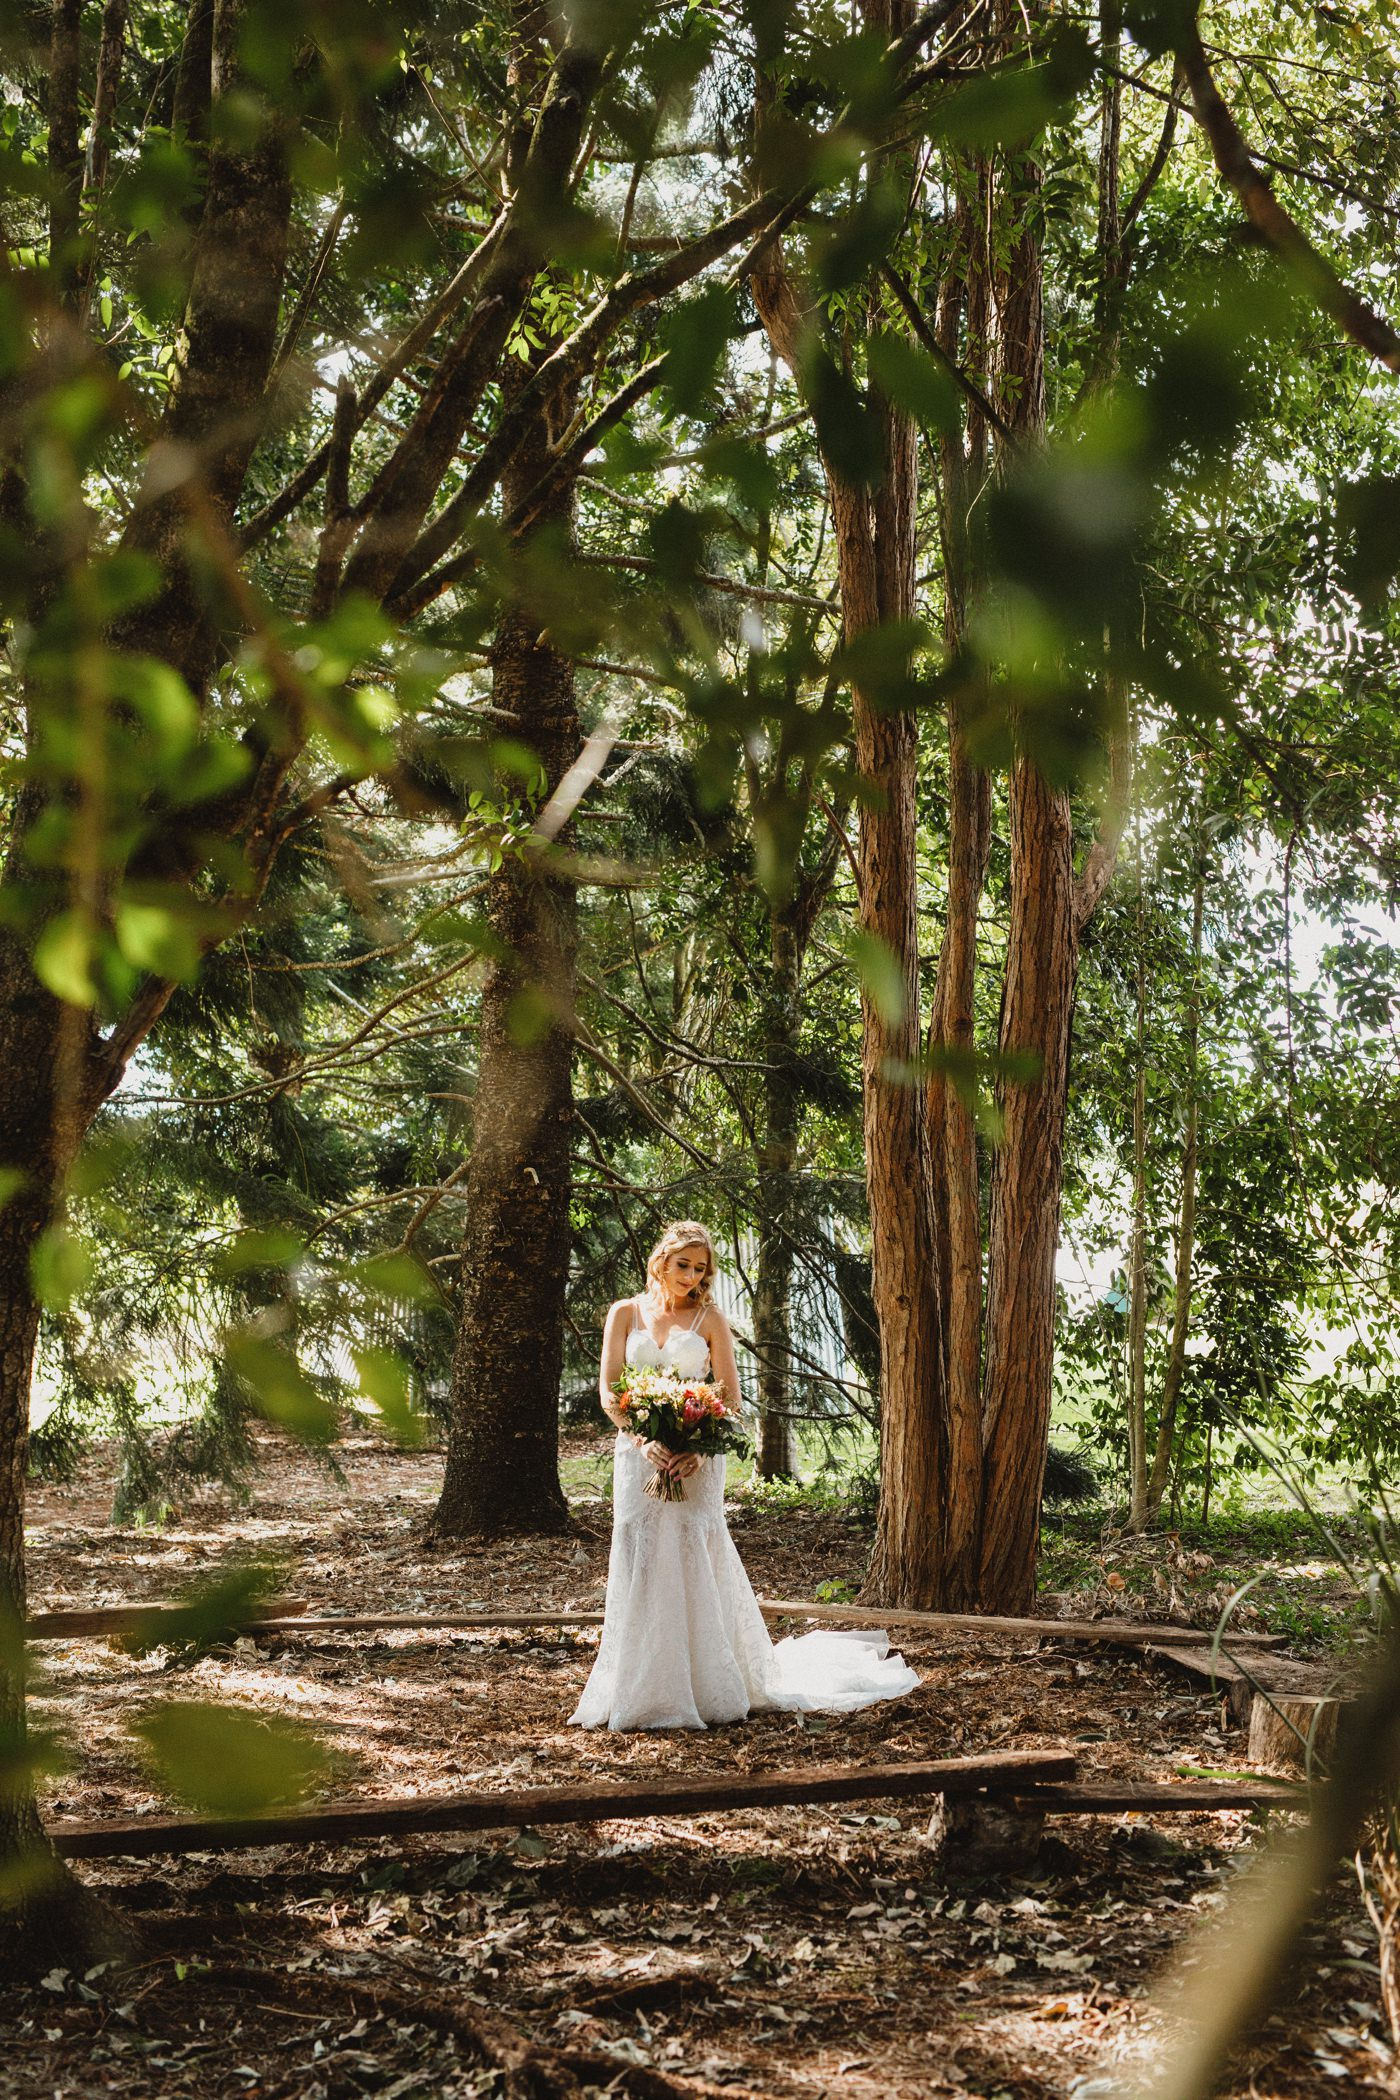 Monica and Lindsay at Maleny Retreat Weddings with Luke Middlemiss Photography